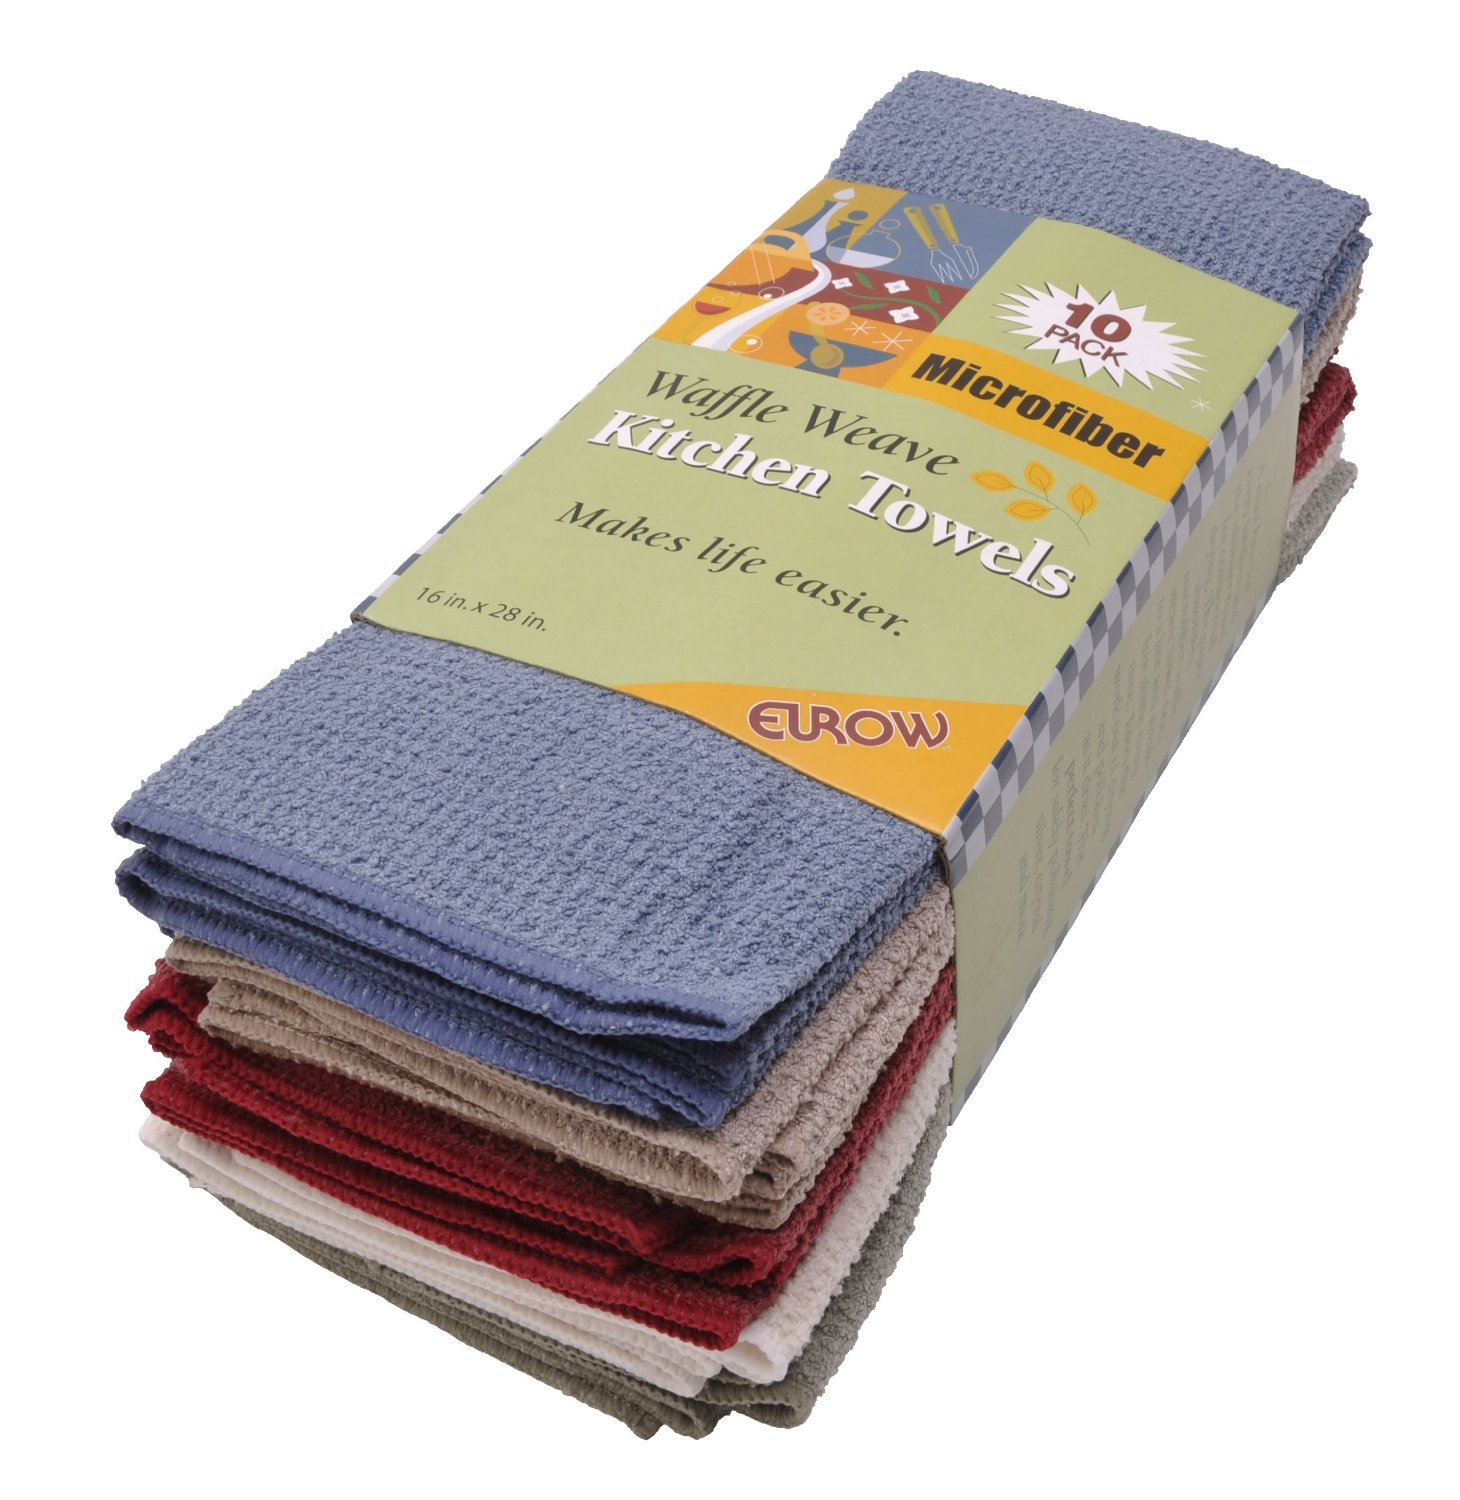 Eurow Microfiber Waffle Weave Kitchen Towels 10pack